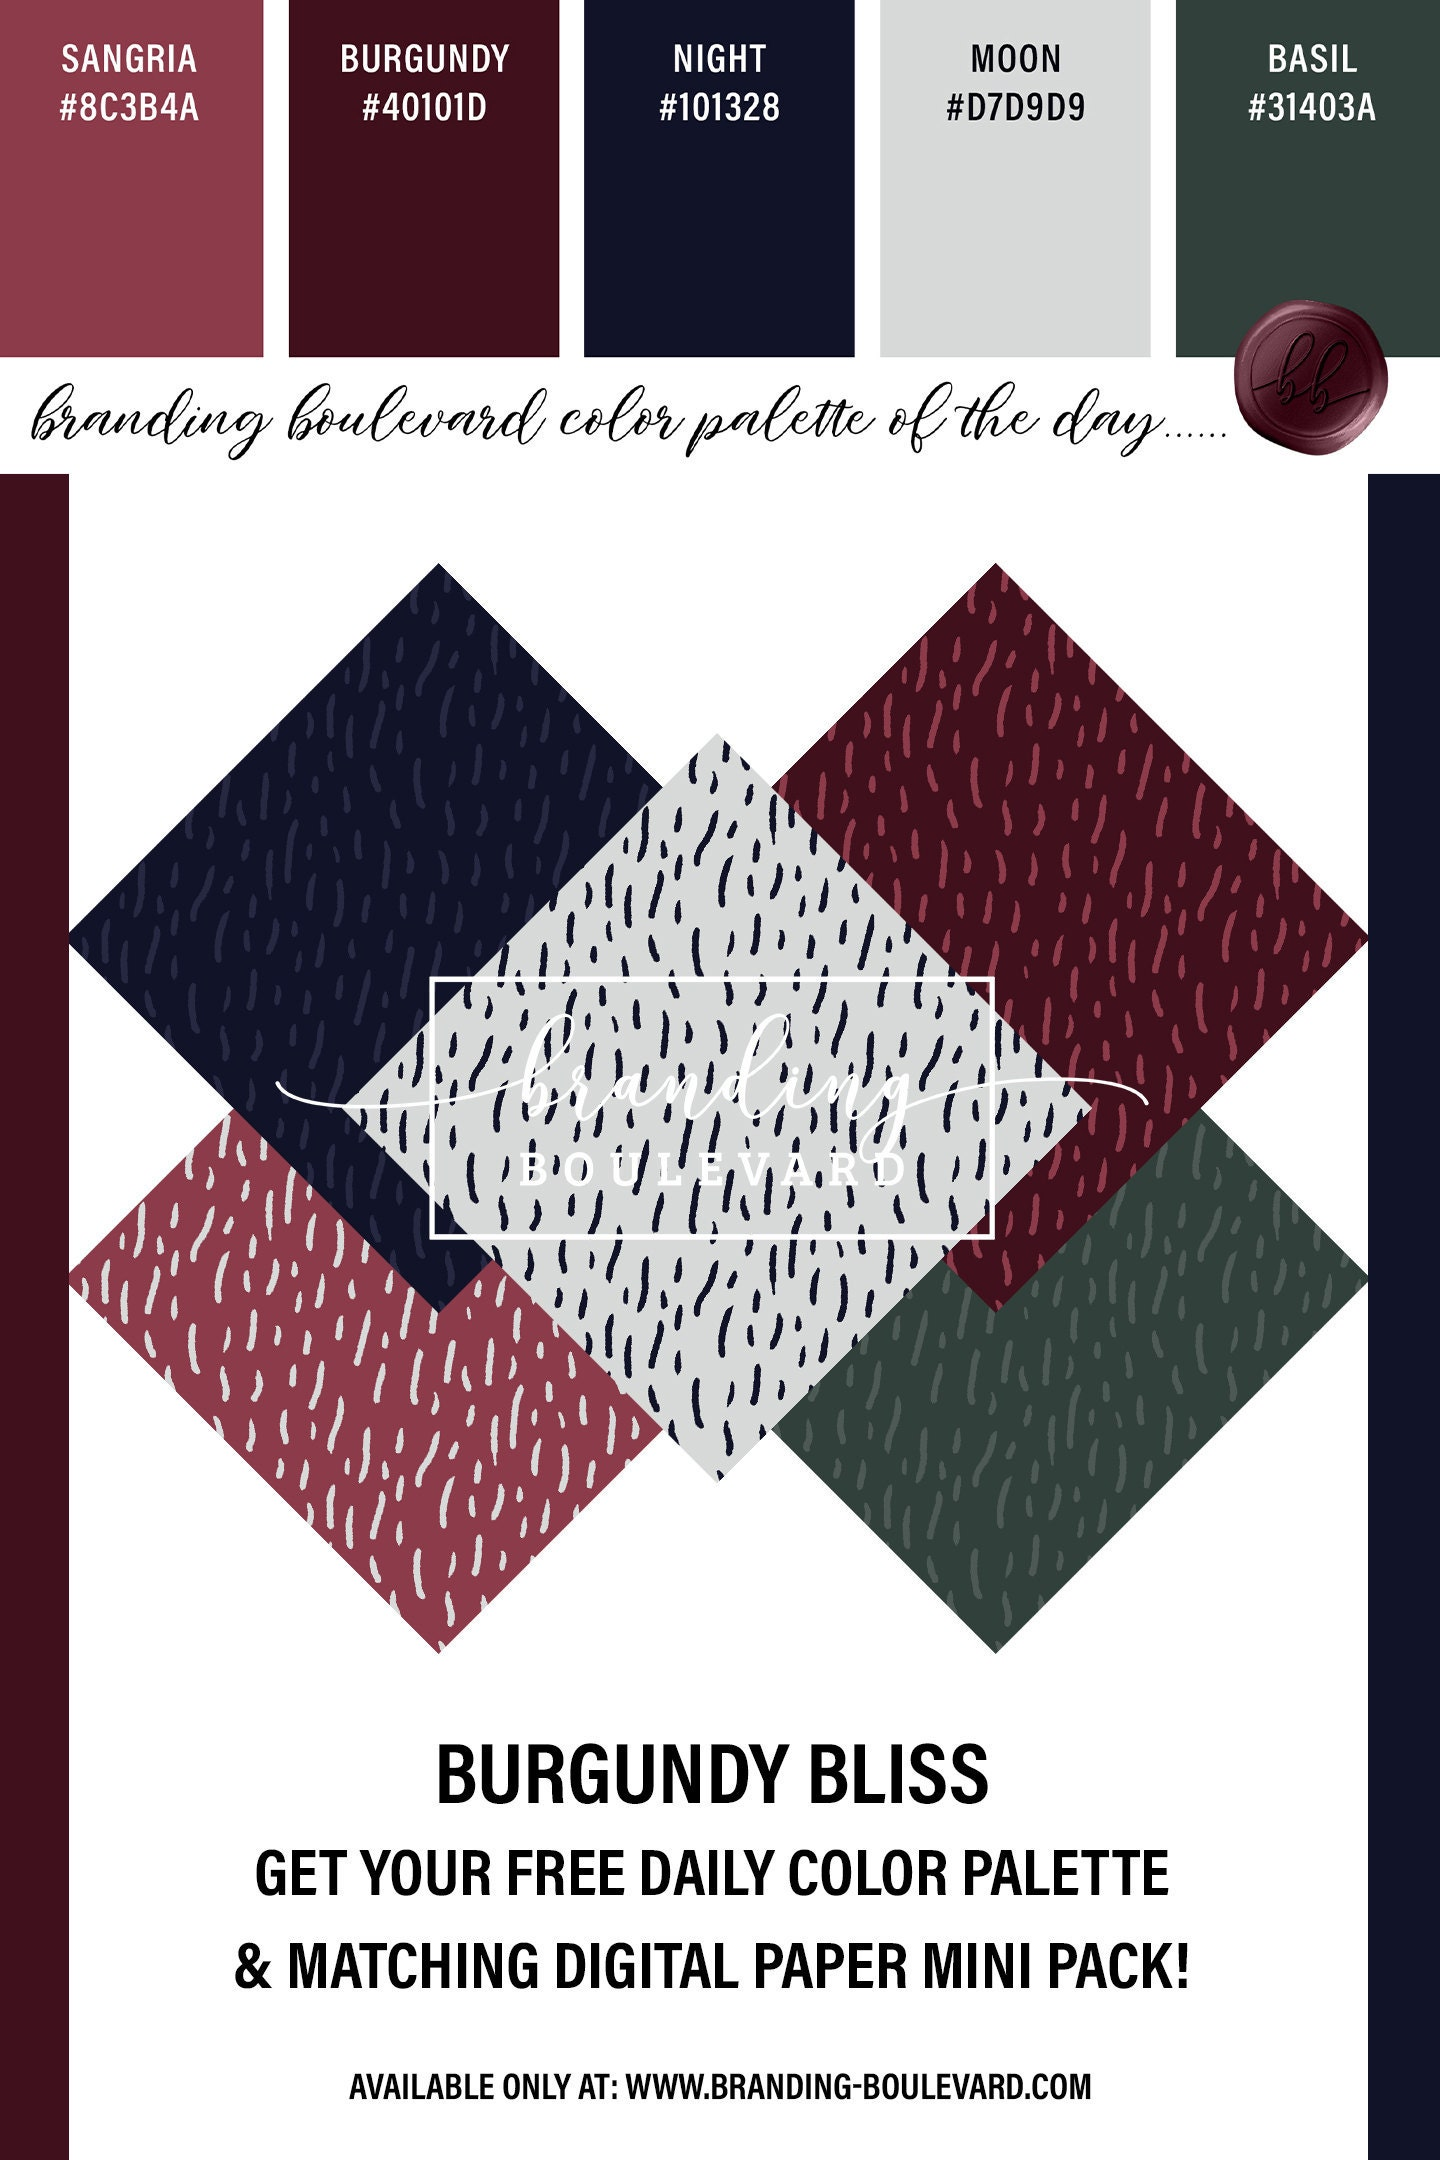 Free Burgundy Bliss Color Palette And Matching Abstract Trendy Digital Paper Pack - Abstract Lines Modern Digital Papers - Wine Burgundy Navy and Green Backgrounds For Free!